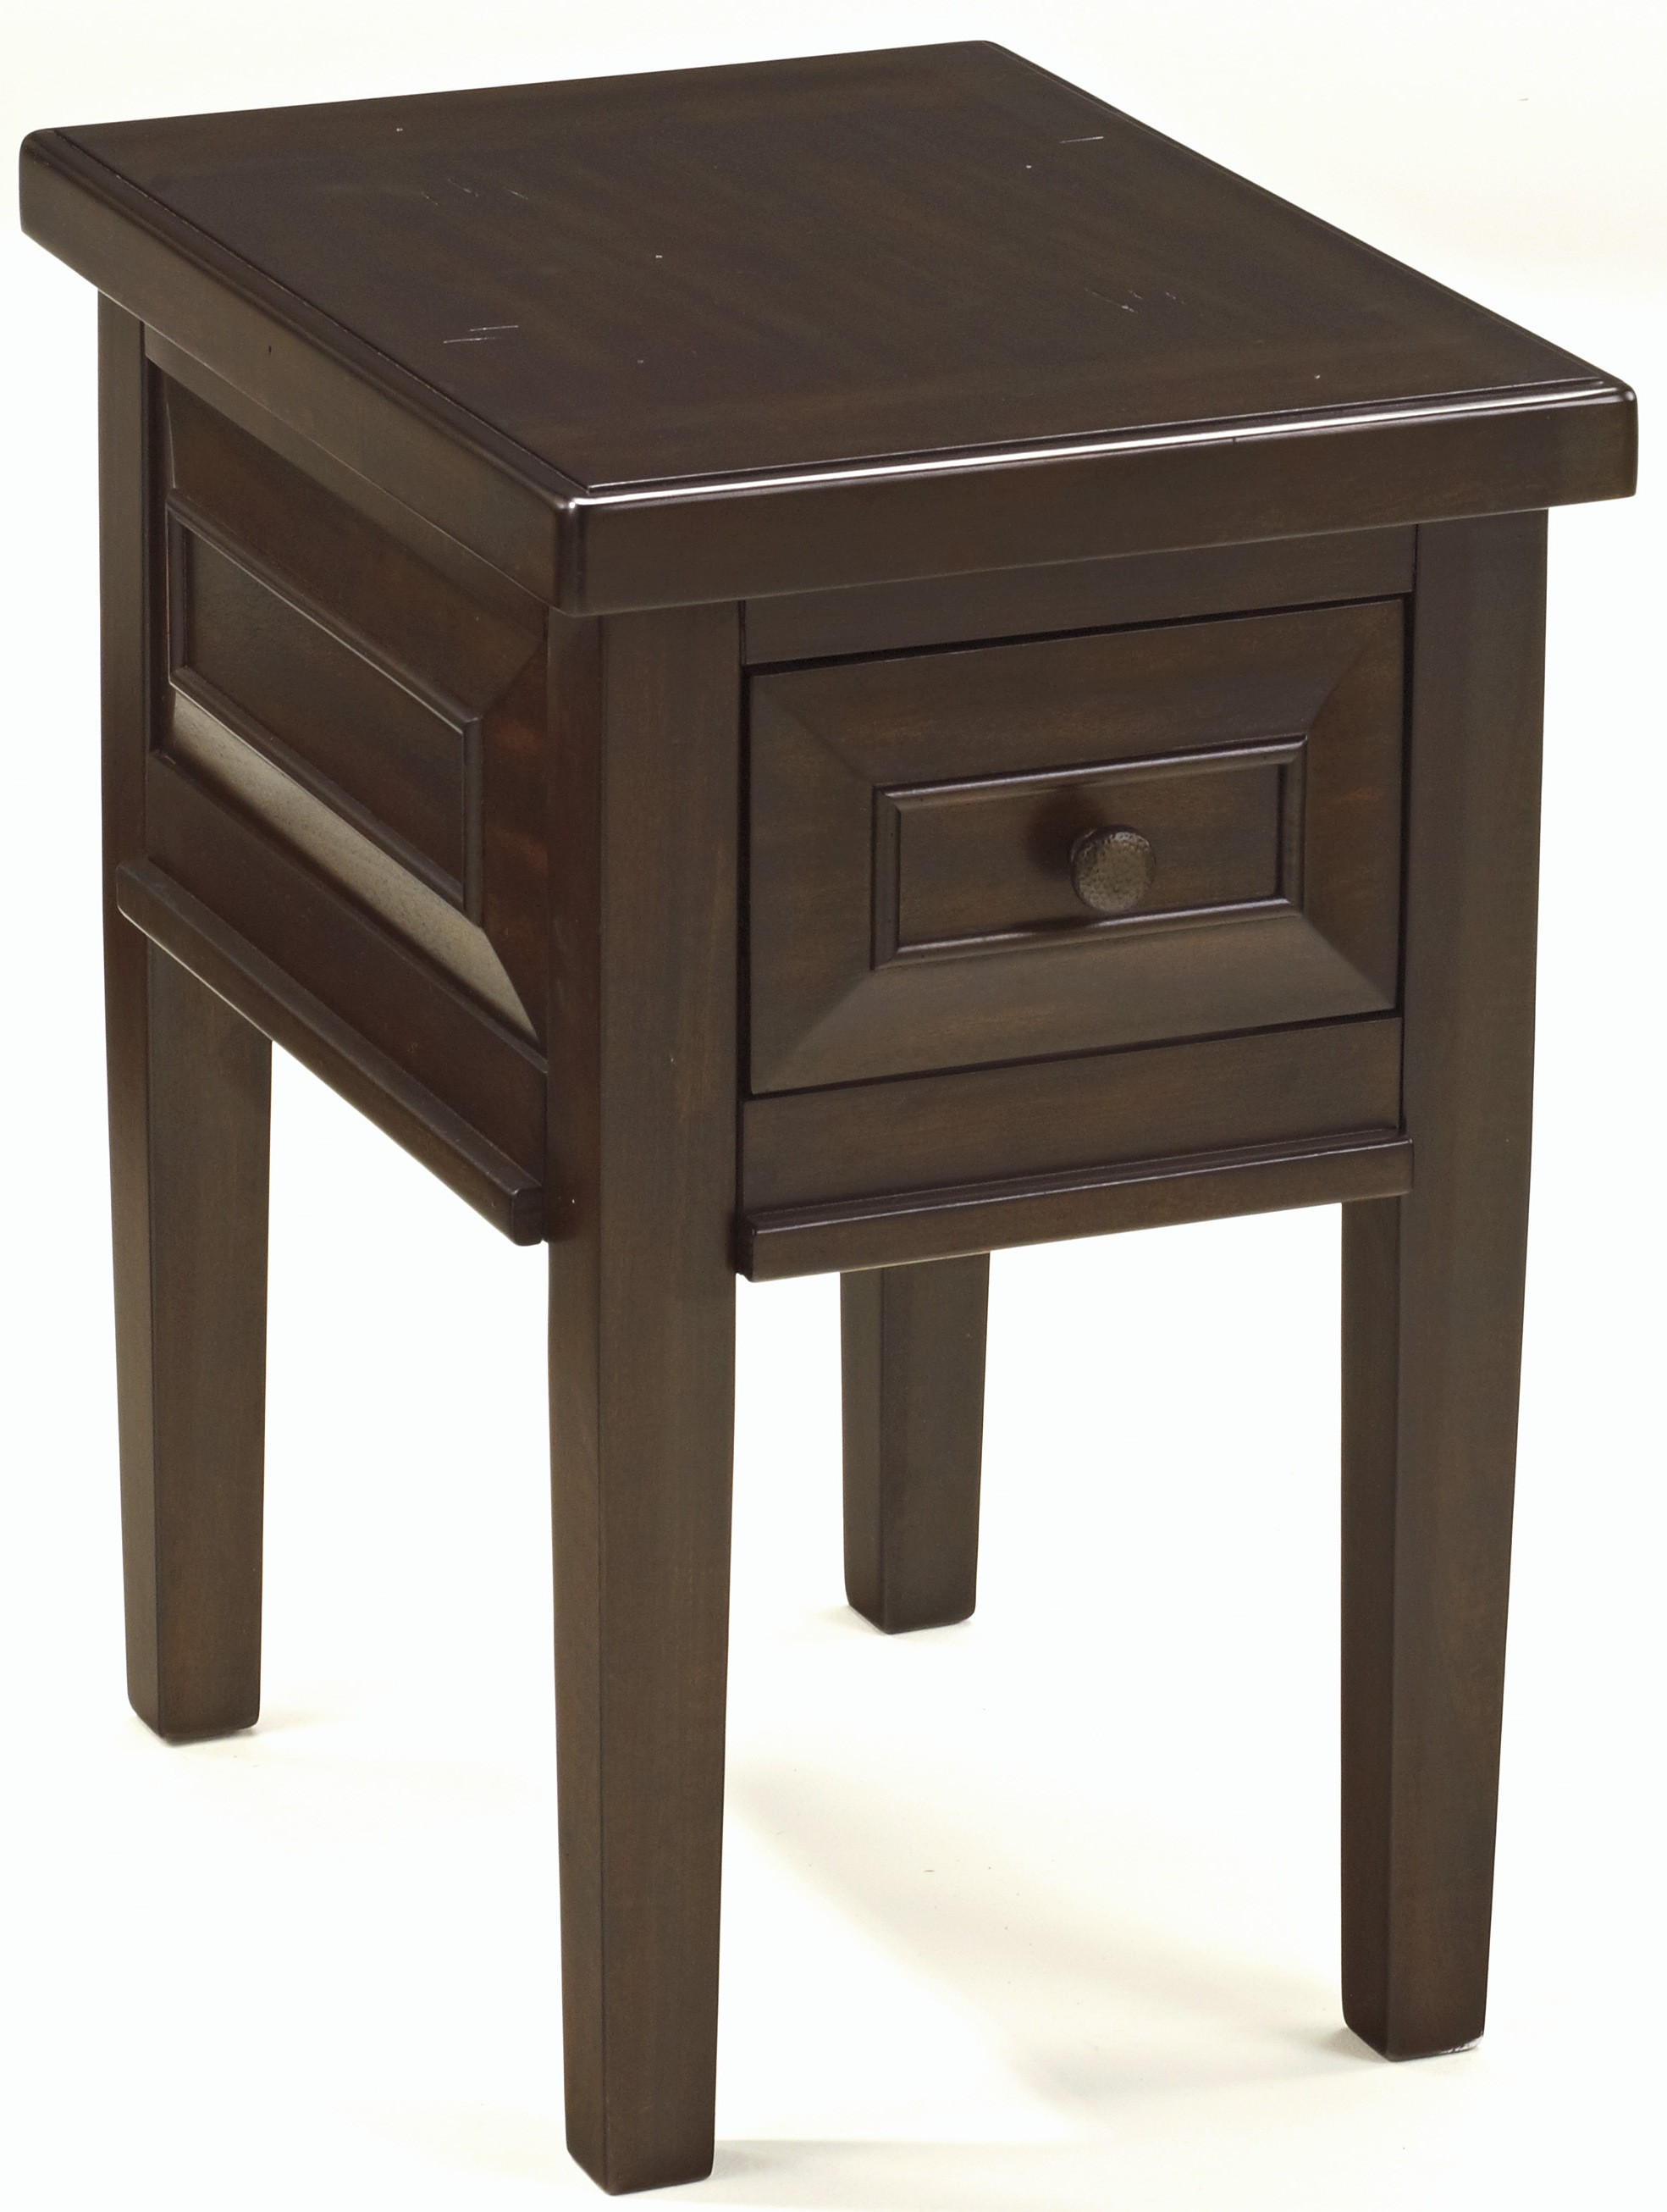 Hindell park chair side end table from ashley t695 7 for Chairside table